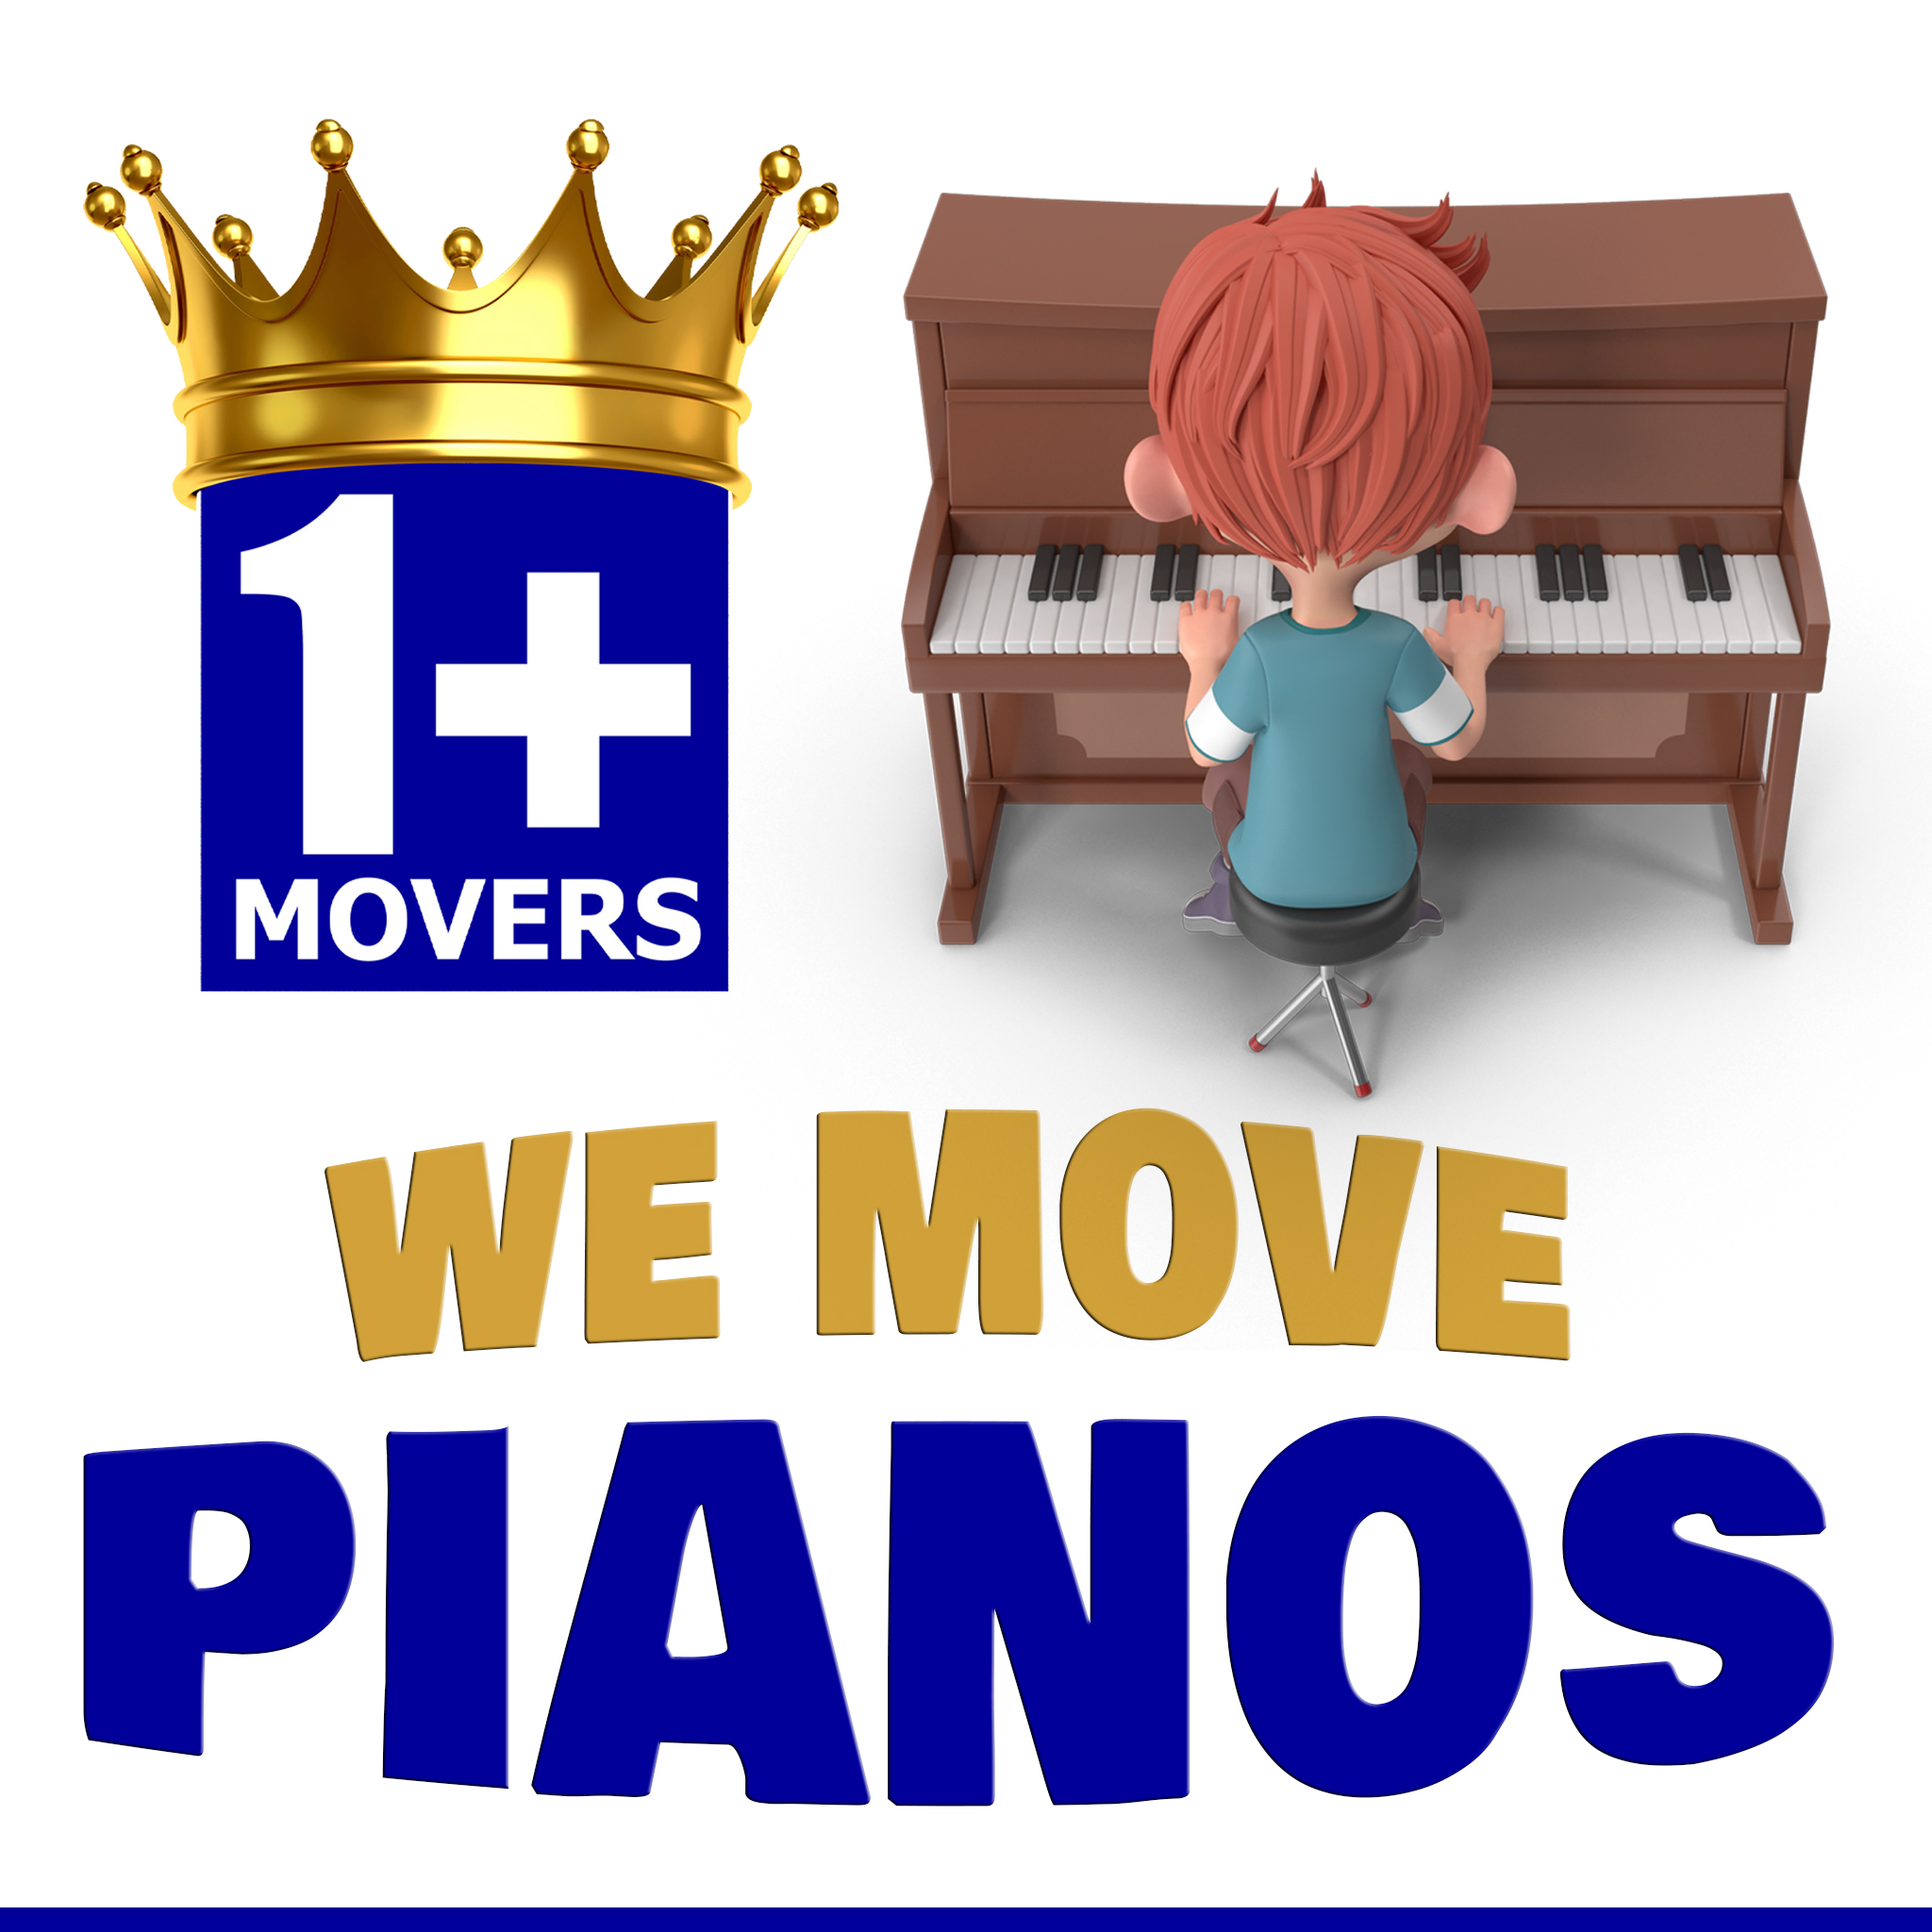 we move pianos Boy Playing Piano Movers Moving Company